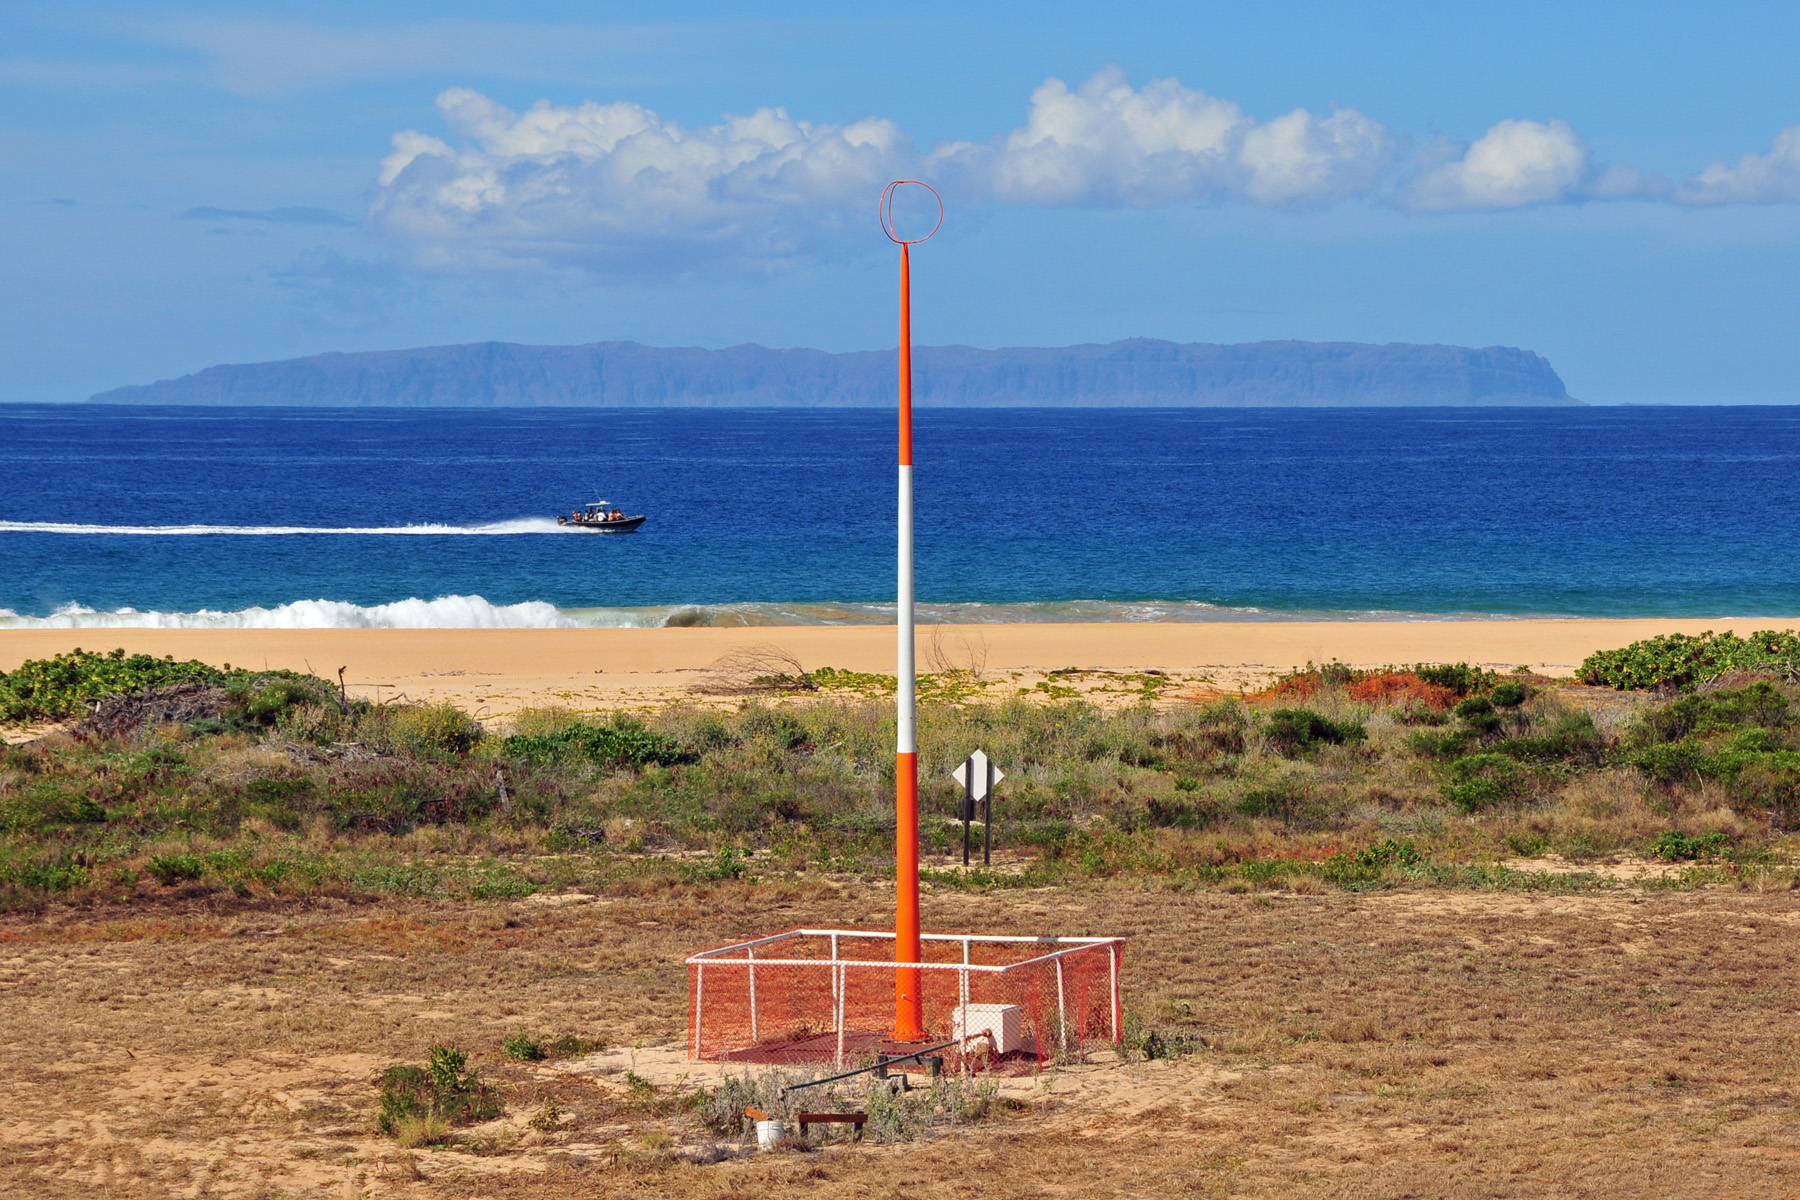 An orange and white antenna a few meters away from a beach. A boat speeds past in the distance. Beyond that the island of Niihau is visible.